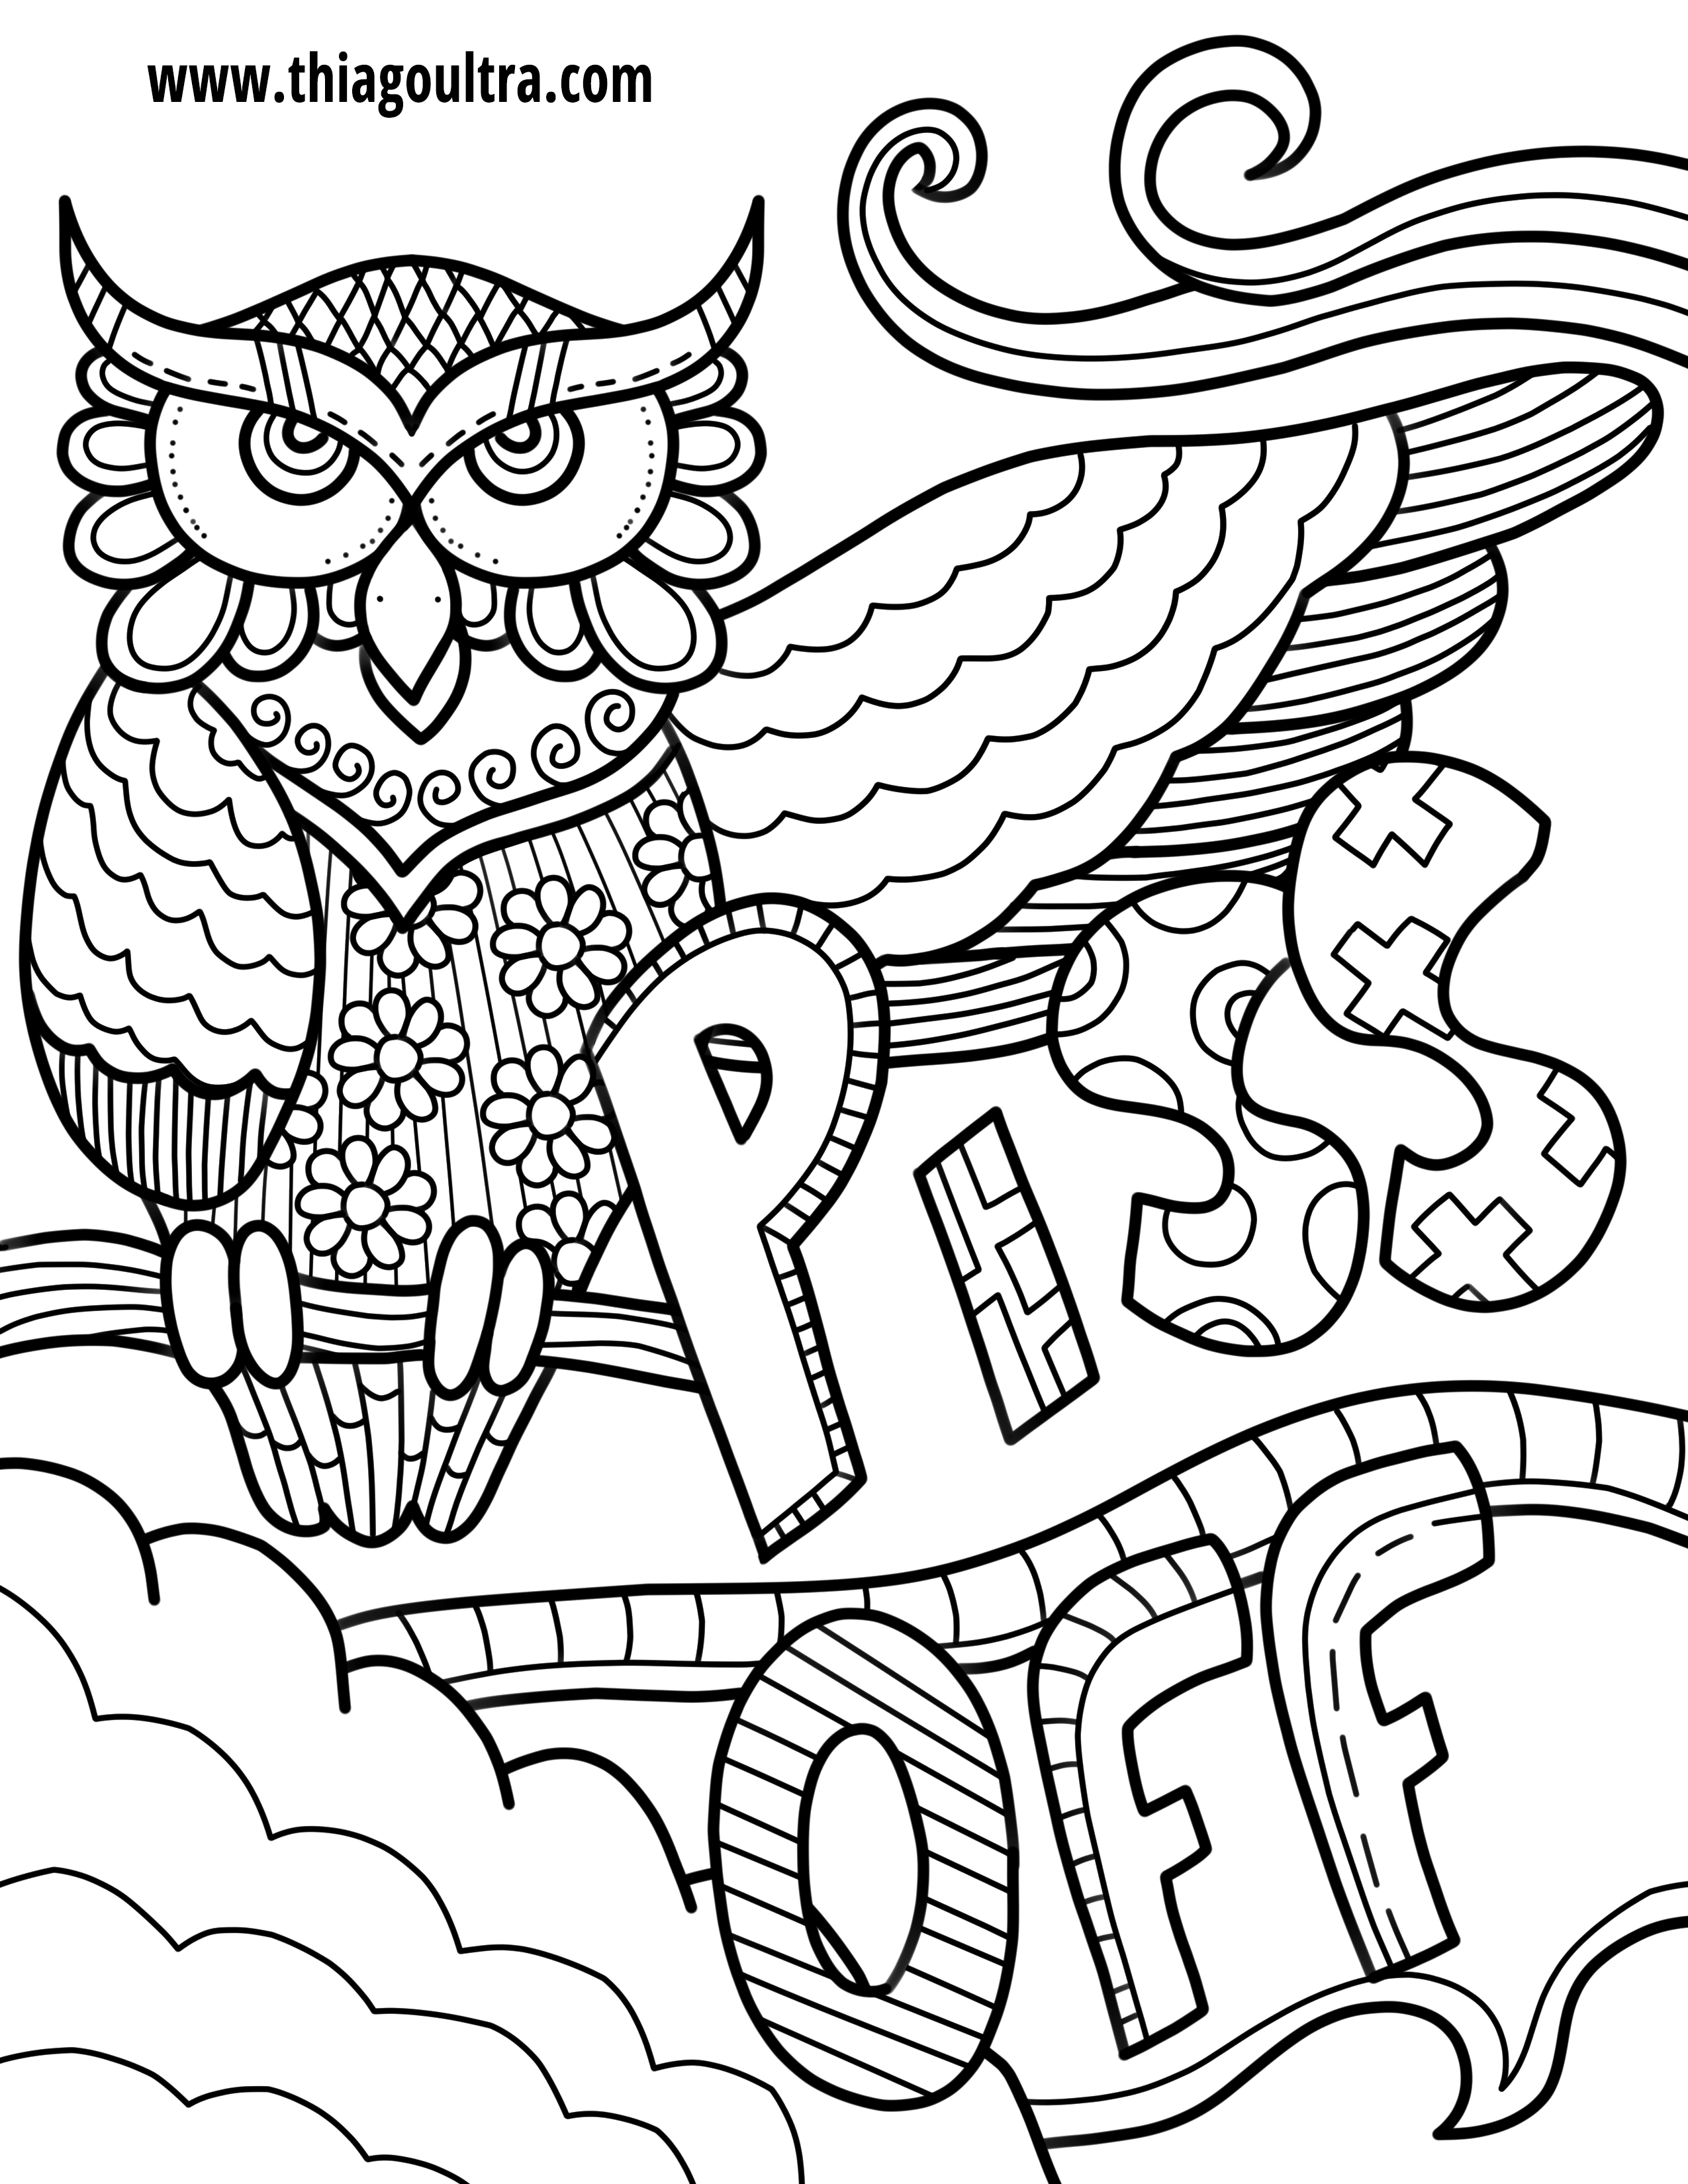 Curse Word Coloring Pages At Getcolorings